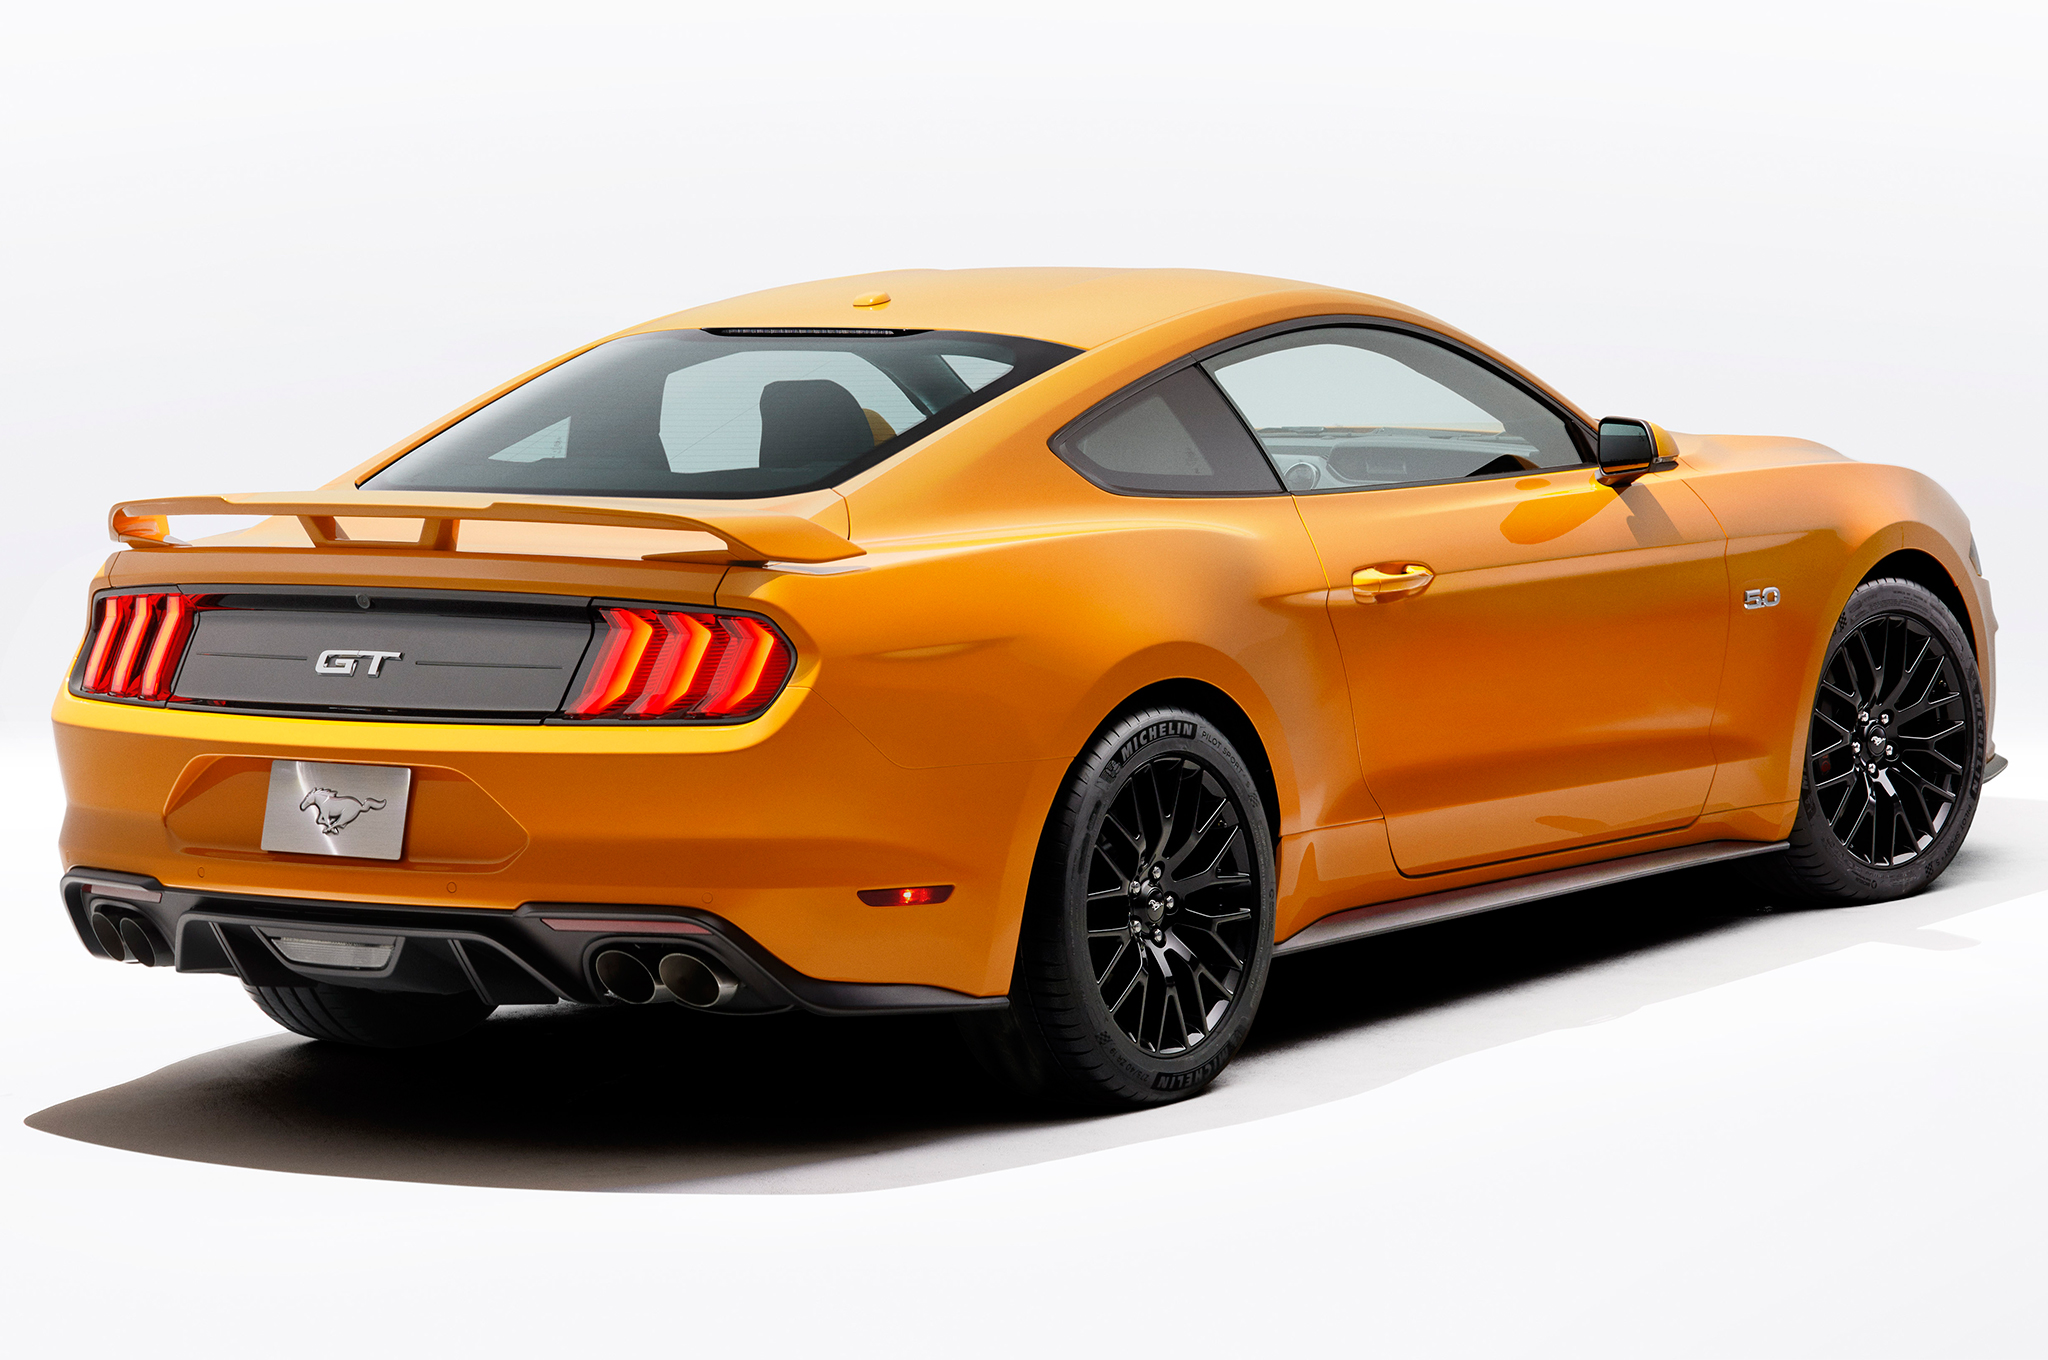 2018-Ford-Mustang-V8-GT-with-Performance-Pack-rear-three-quarter-studio